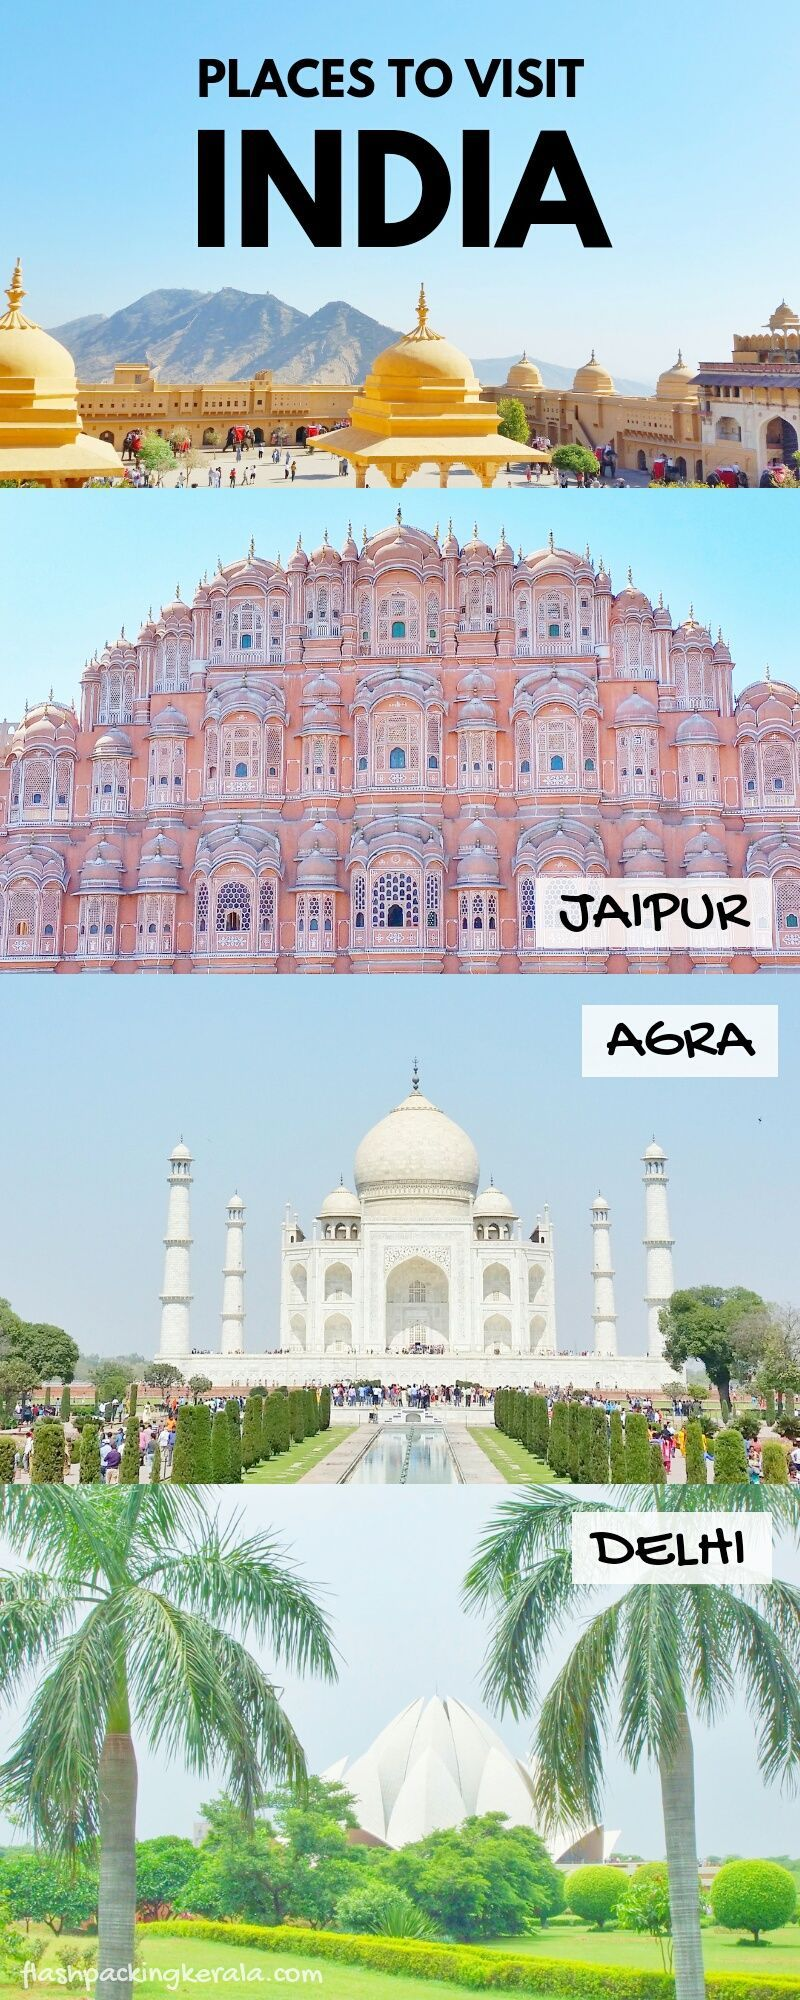 Golden Triangle India Itinerary Diy Golden Triangle Tour By Train Bus Backpacking India Flashpacking Kerala Cool Places To Visit Backpacking India Golden Triangle India